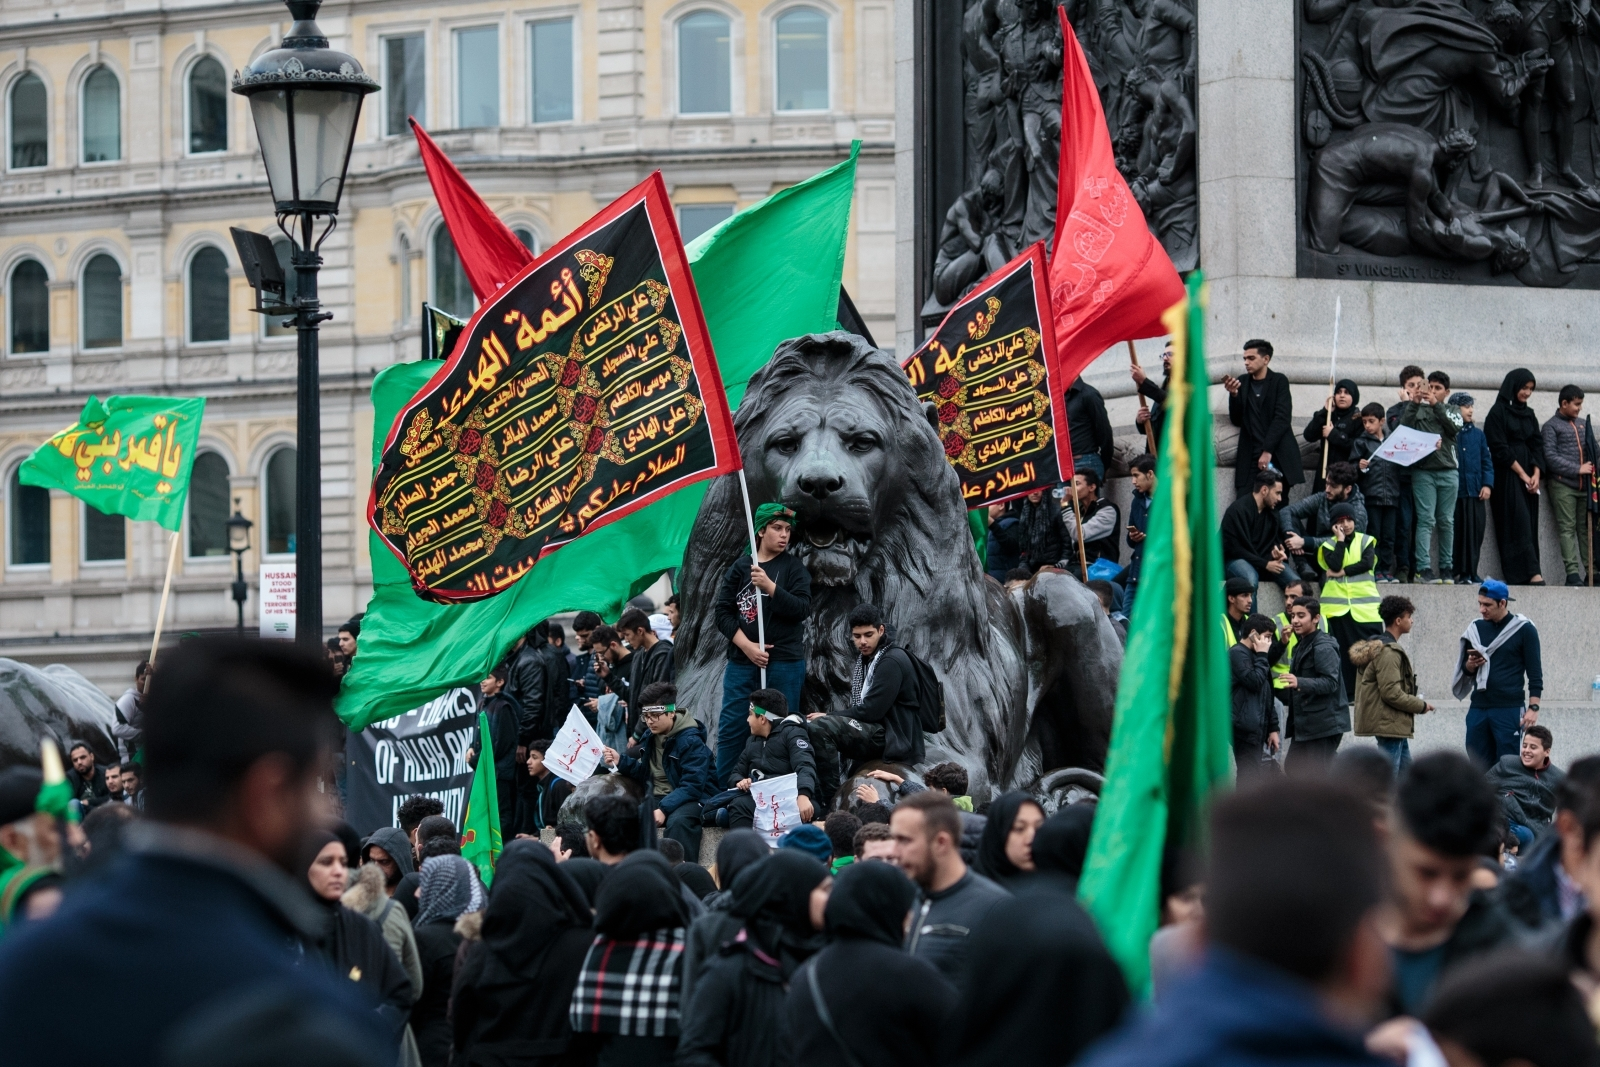 Muslims anti-Isis protest, London